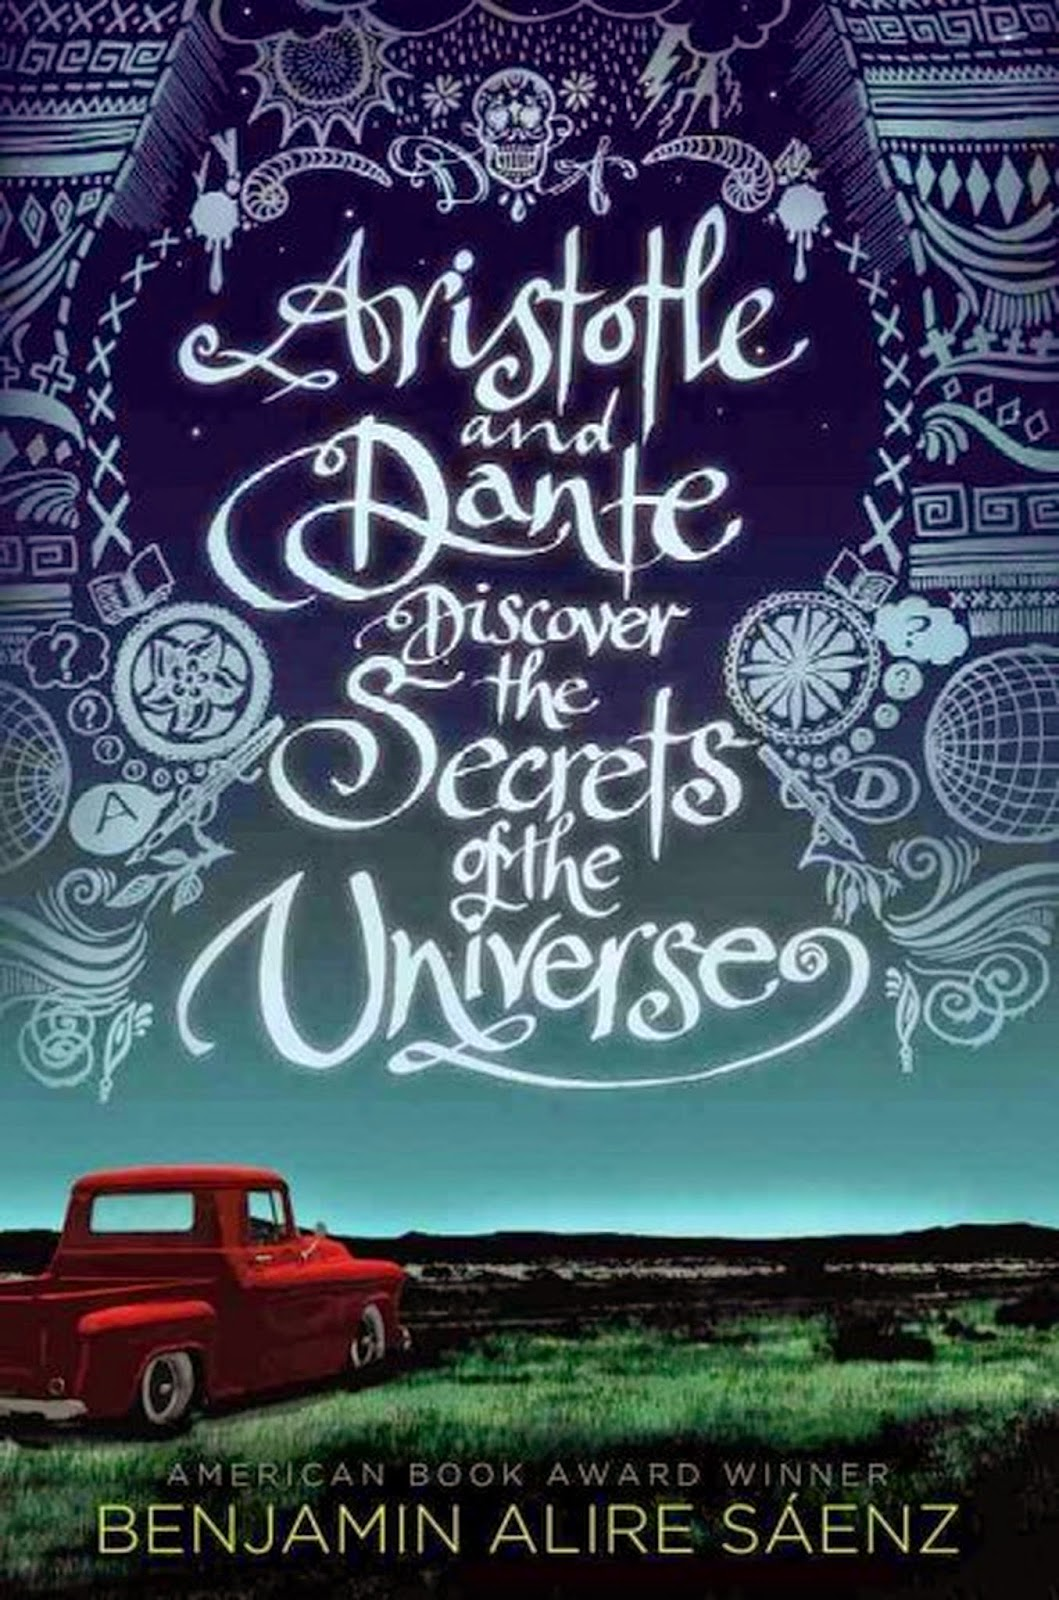 Book cover: Aristotle and Dante Discover the Secrets of the Universe. Red pick-up truck parked in a field of grass against a backdrop of hills and a twilight sky.